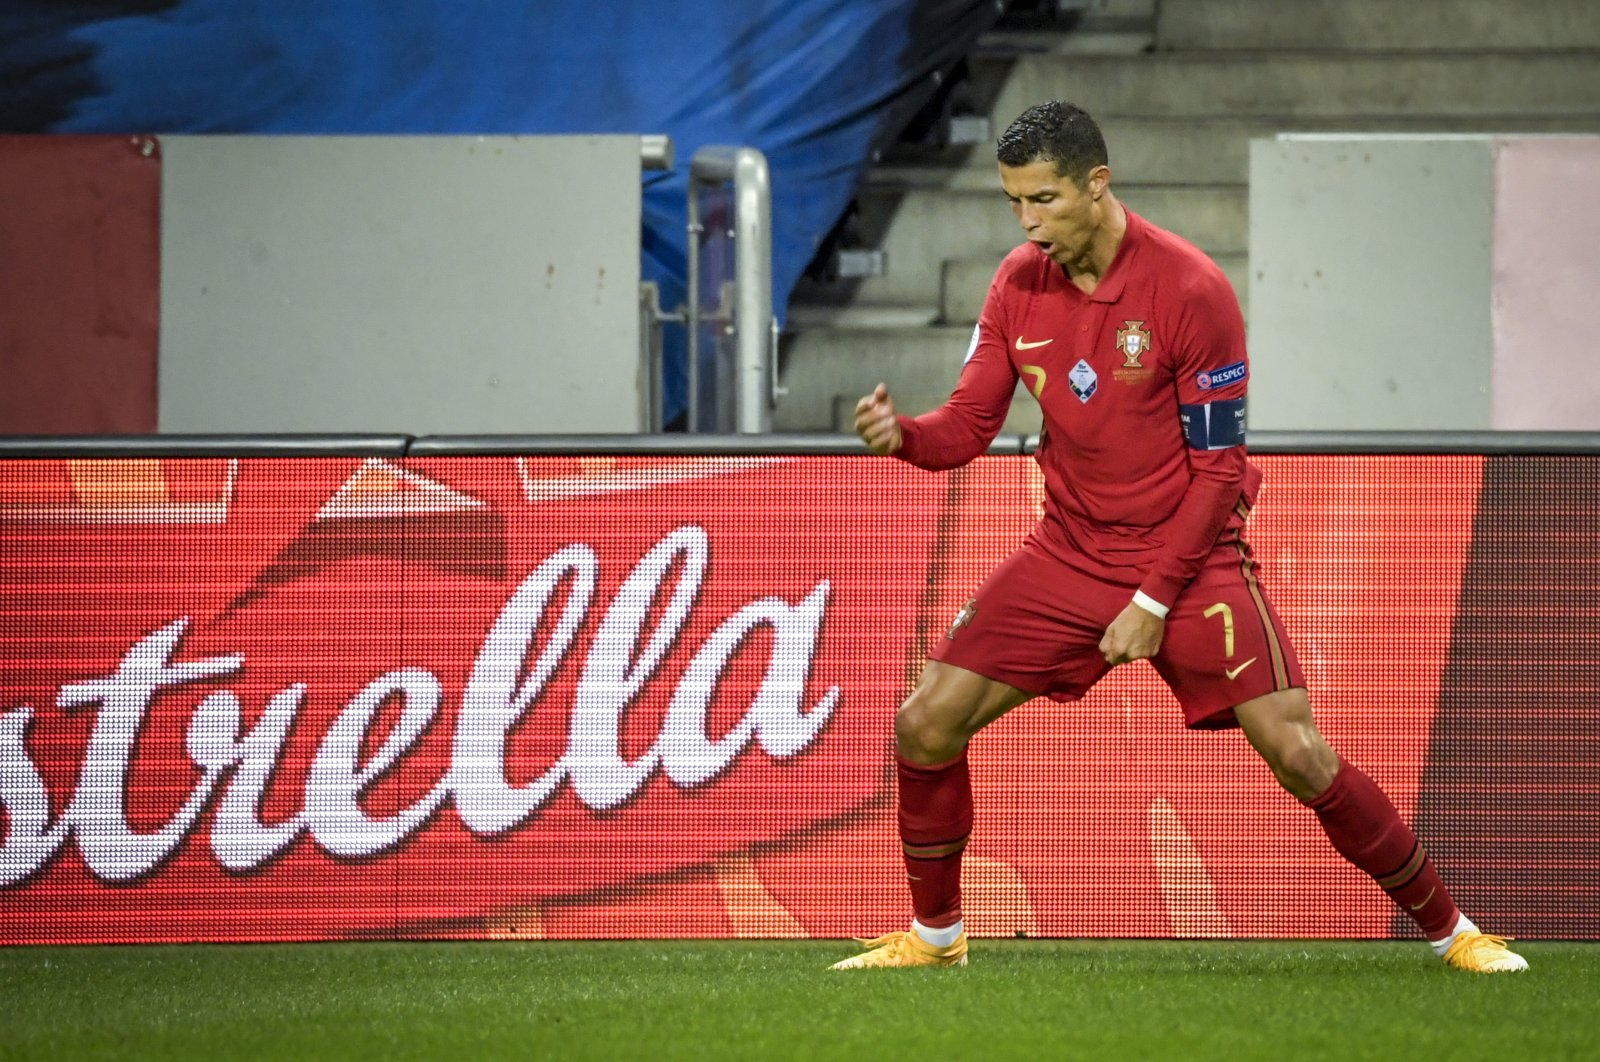 Portugal's Cristiano Ronaldo celebrates scoring his second goal against Sweden during their UEFA Nations League Group stage soccer match at Friends Arena in Stockholm, Sweden, Sept. 8, 2020. (TT via AP)